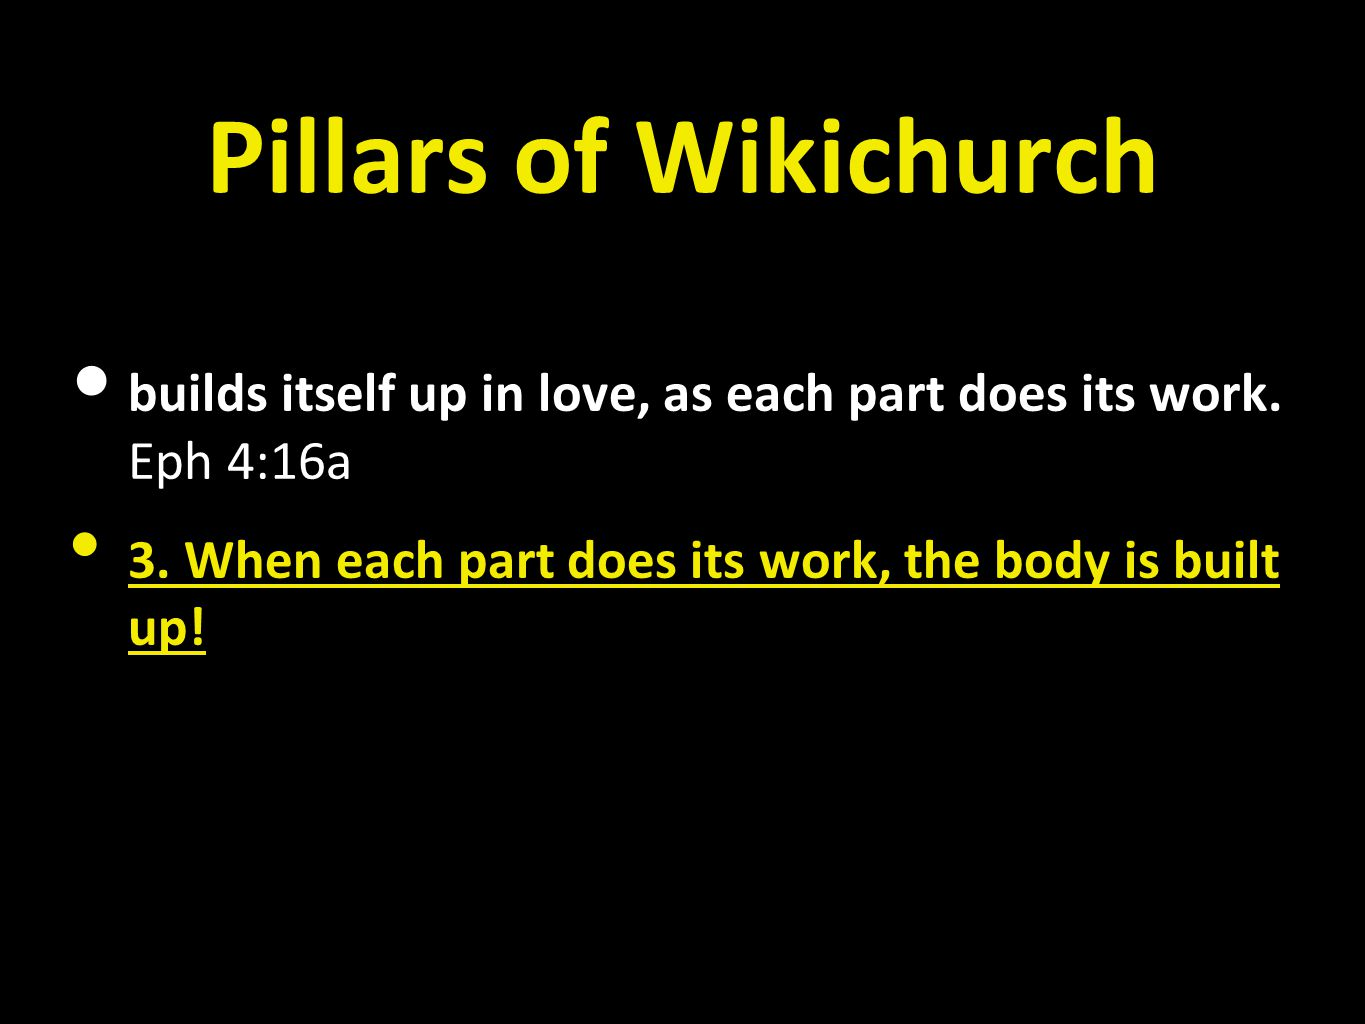 Pillars of Wikichurch • builds itself up in love, as each part does its work.